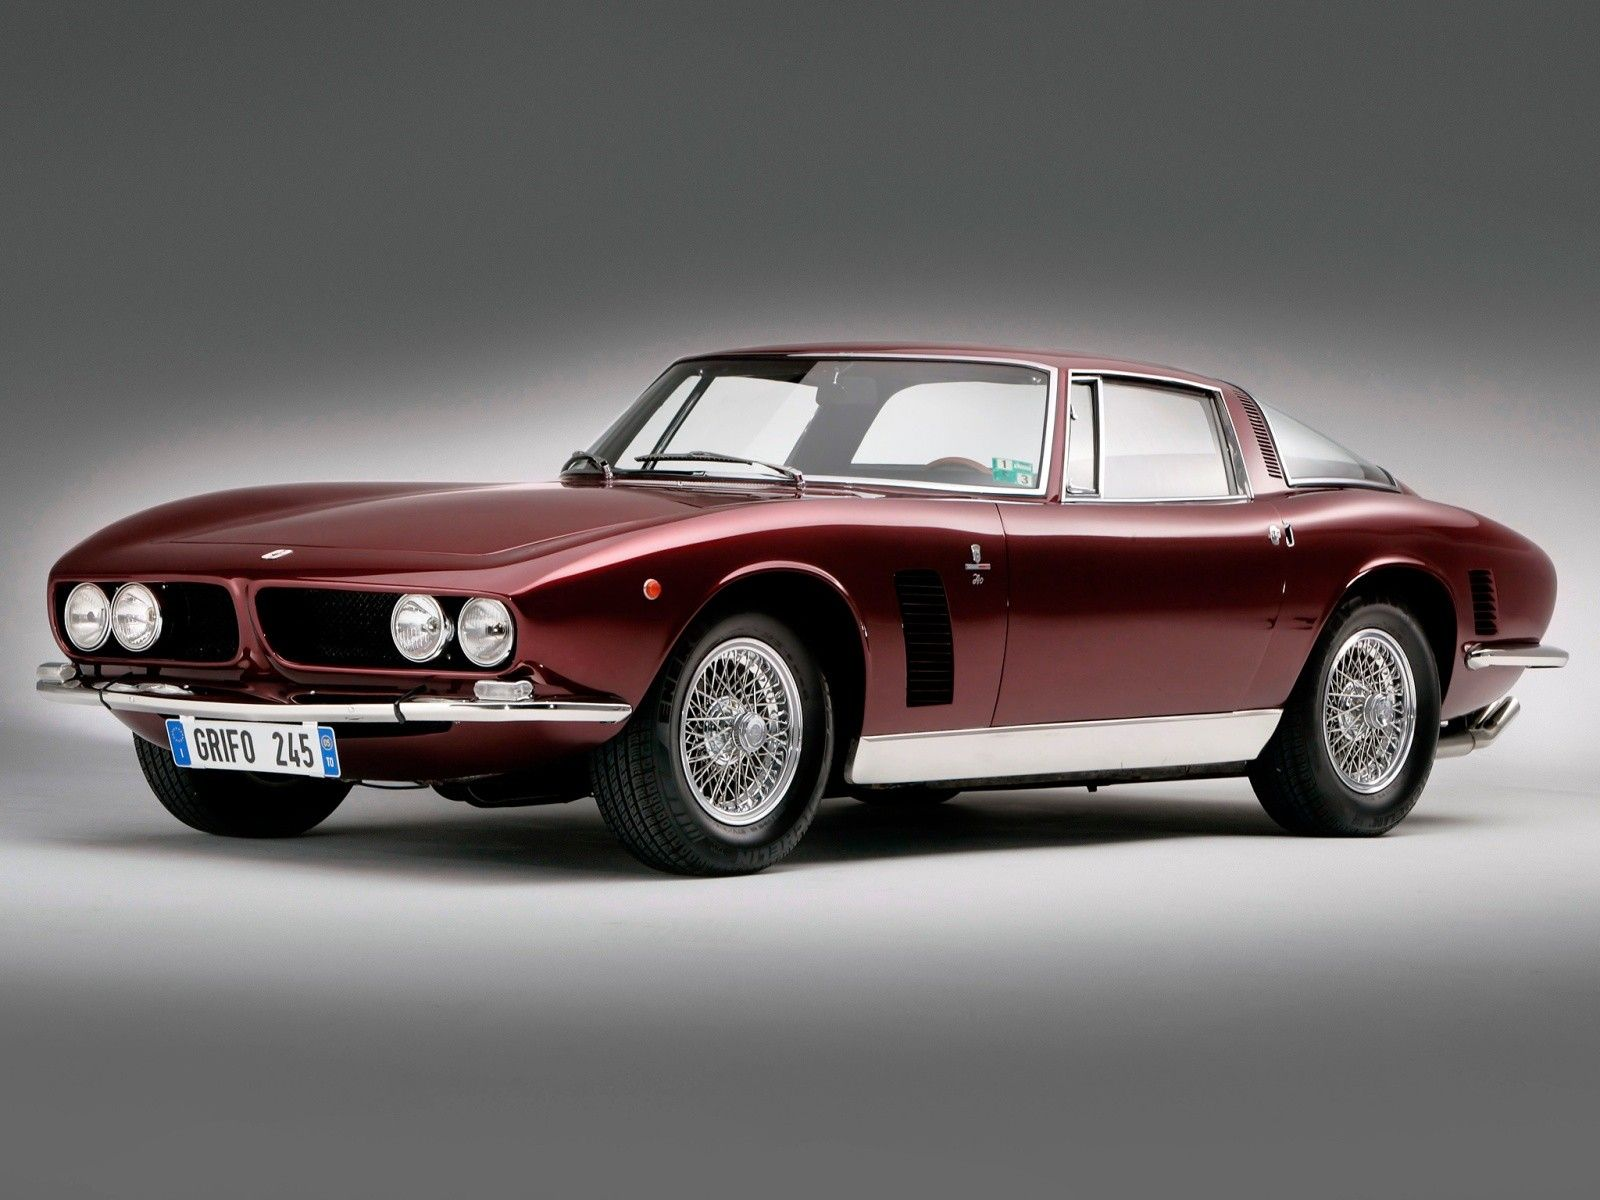 b89688d057b69de9c2a988f1c006d516 Elegant Ferrari F 108 Al-mondial 8 Cars Trend